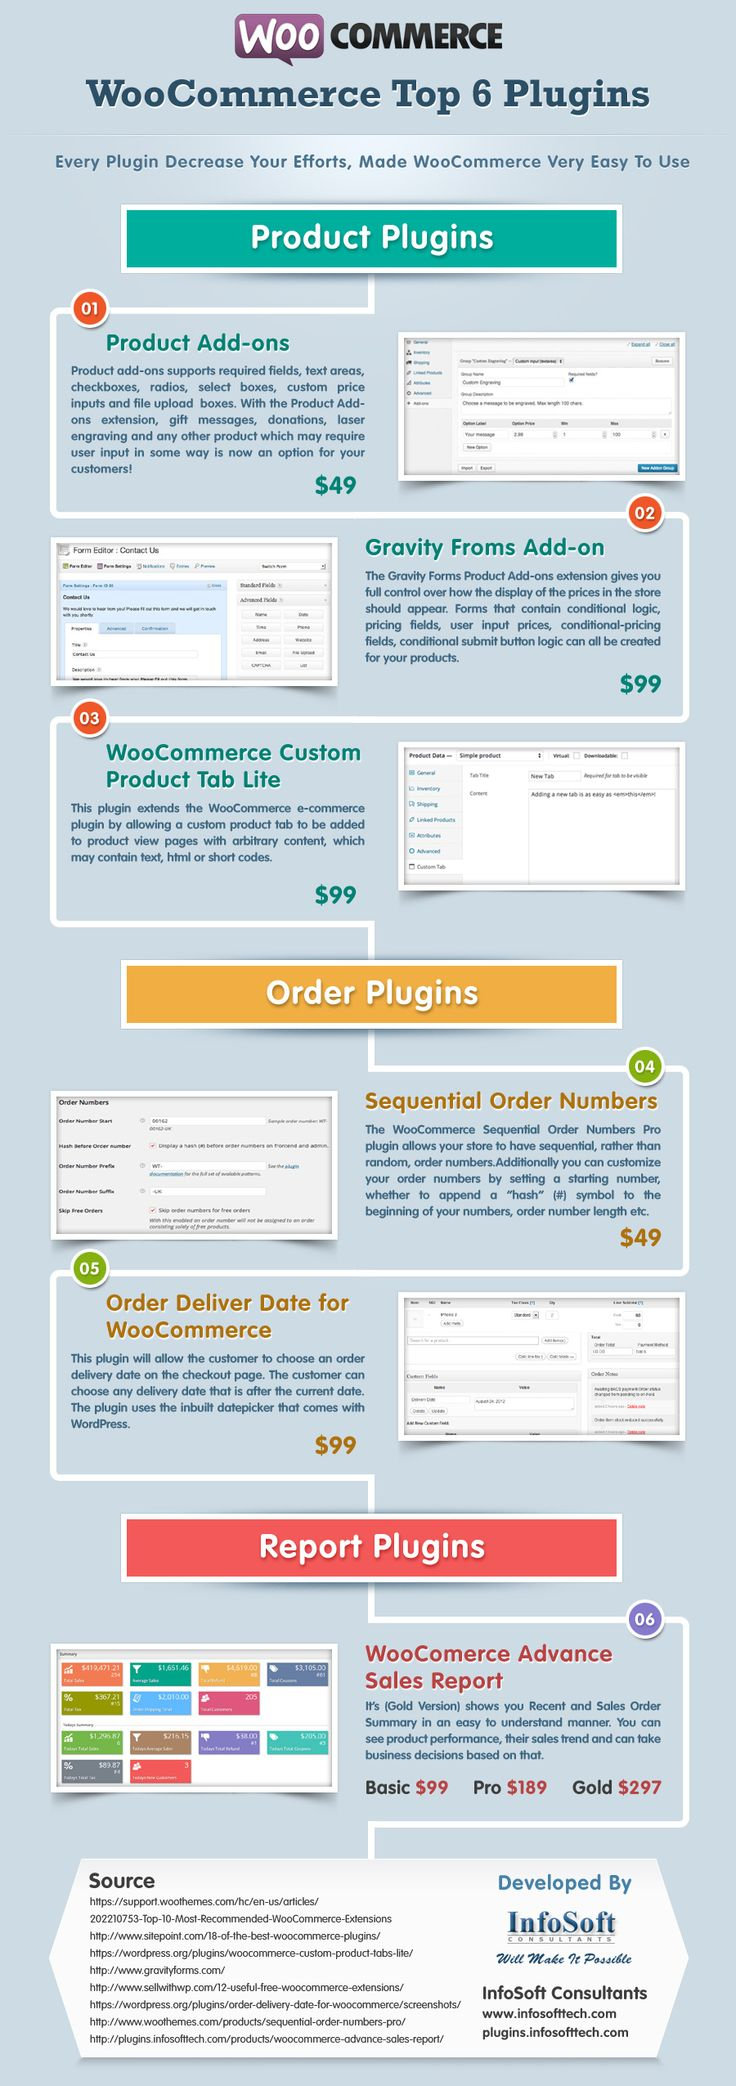 Woocommerce themes and other supported plugin directly available on WOOTHEME or other 3rd party website. WooCommerce becomes perfect solution for every business ecommerce store with the multi functionality, easy to use, various payment gateway options and many supported plugins developed by various developers.